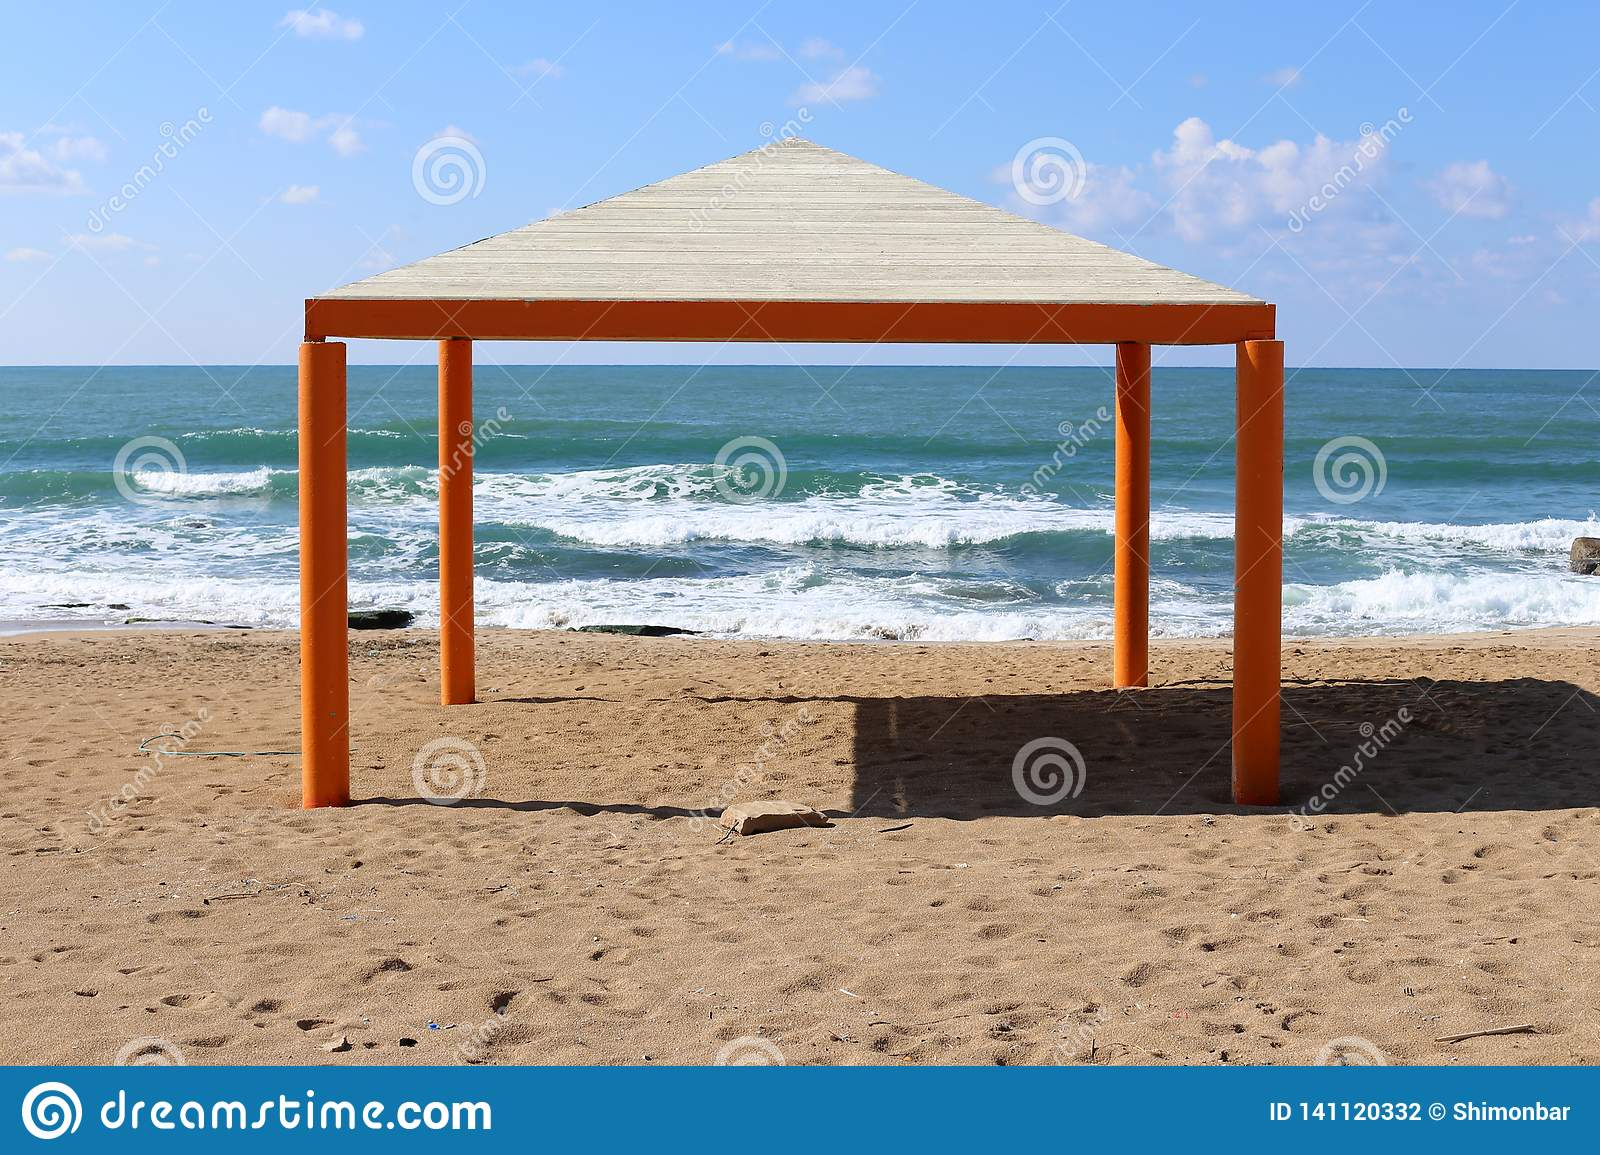 Sunshade by the sea stock photo  Image of mediterranean